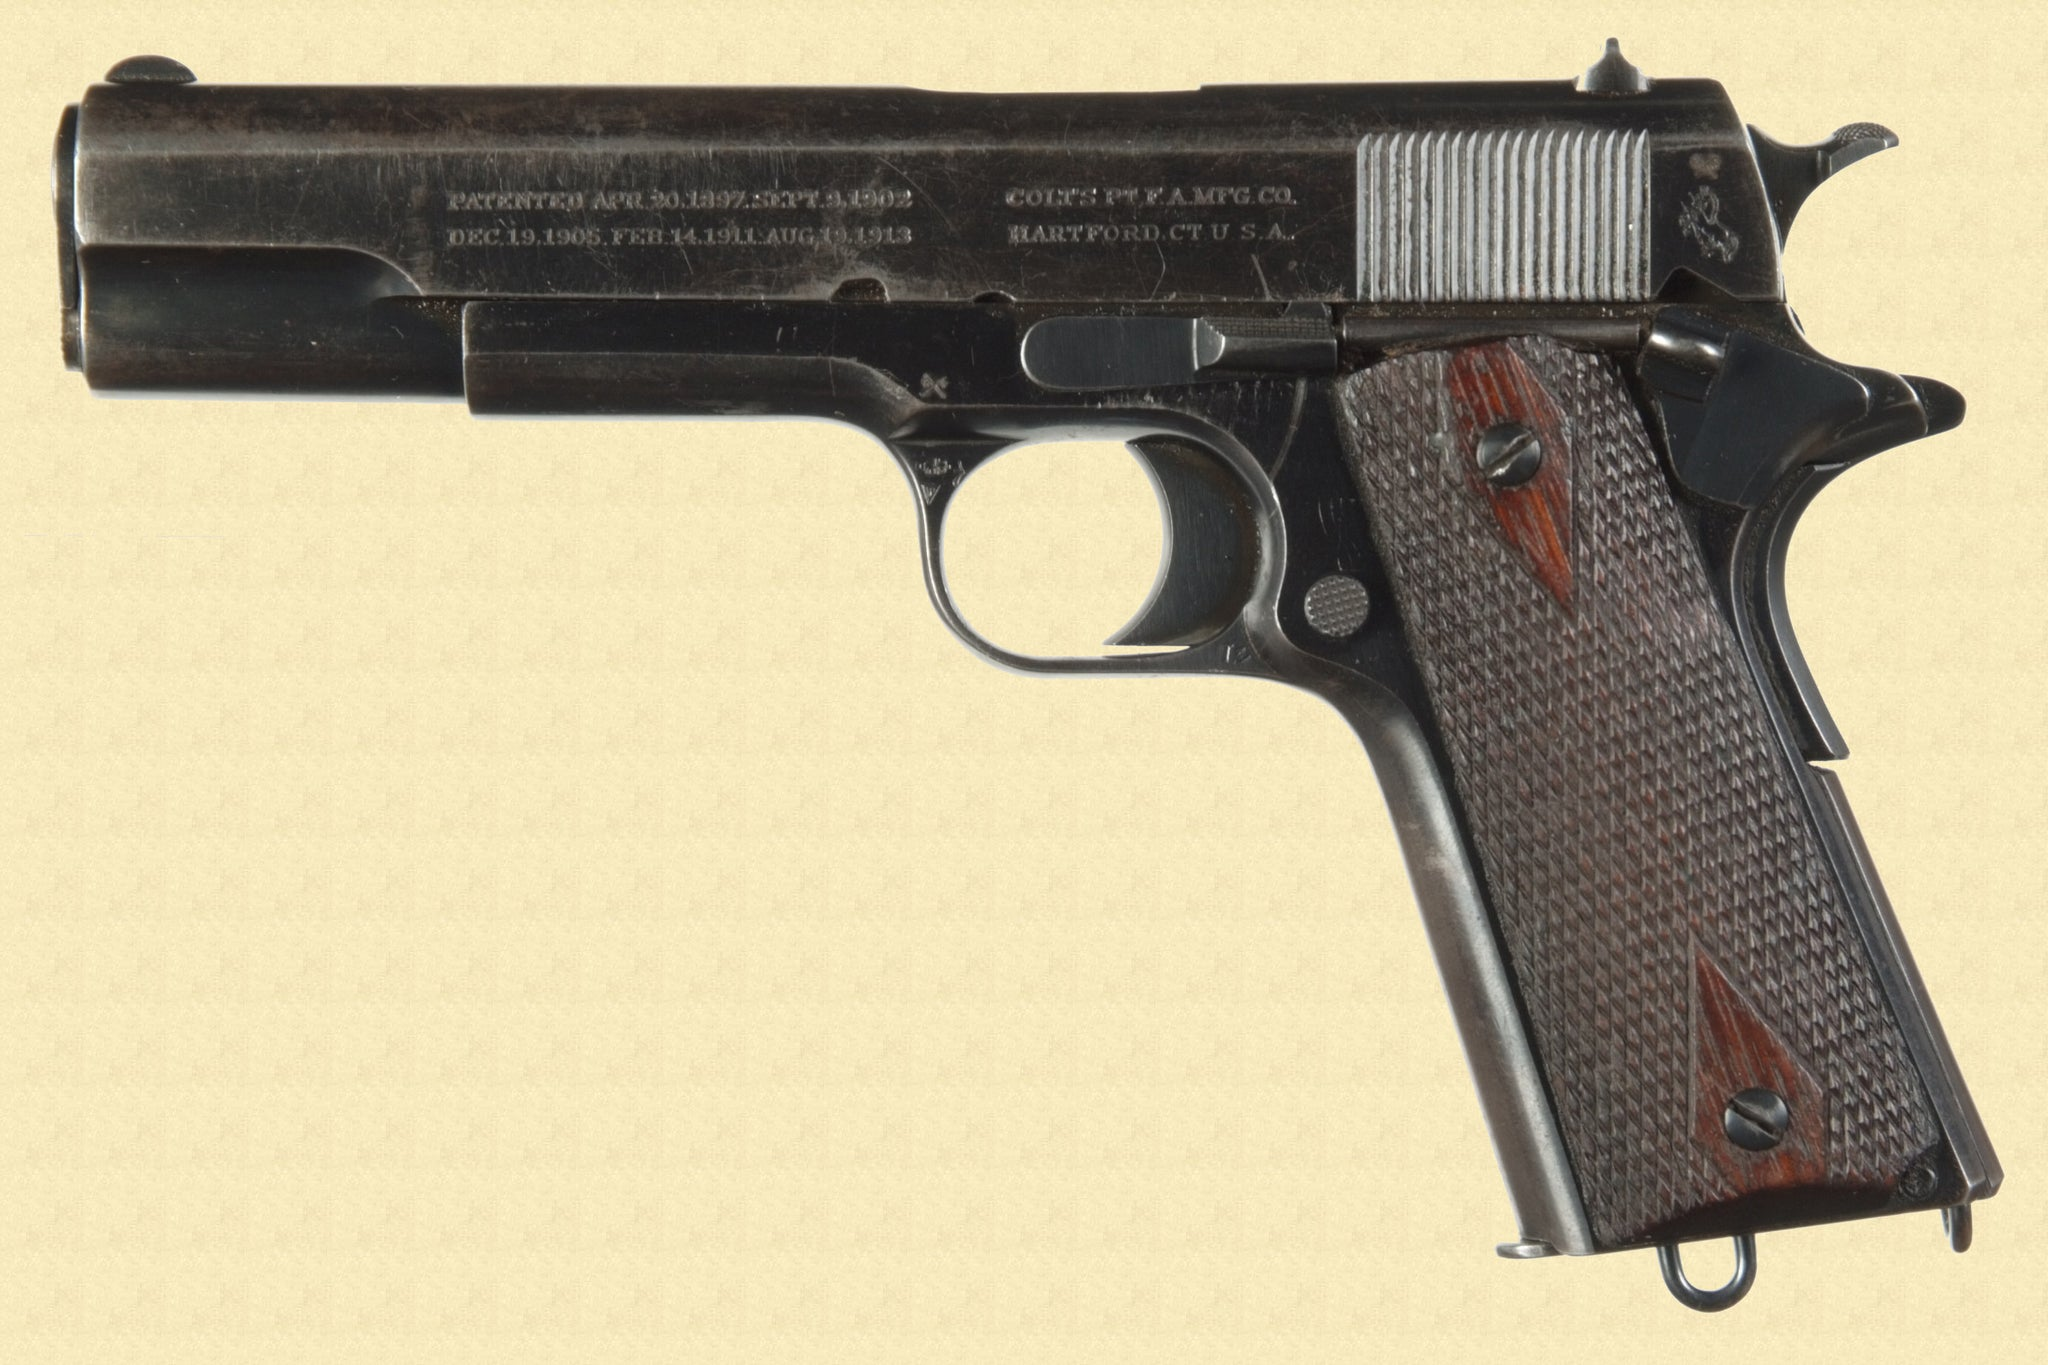 COLT GOVERNMENT MODEL 455